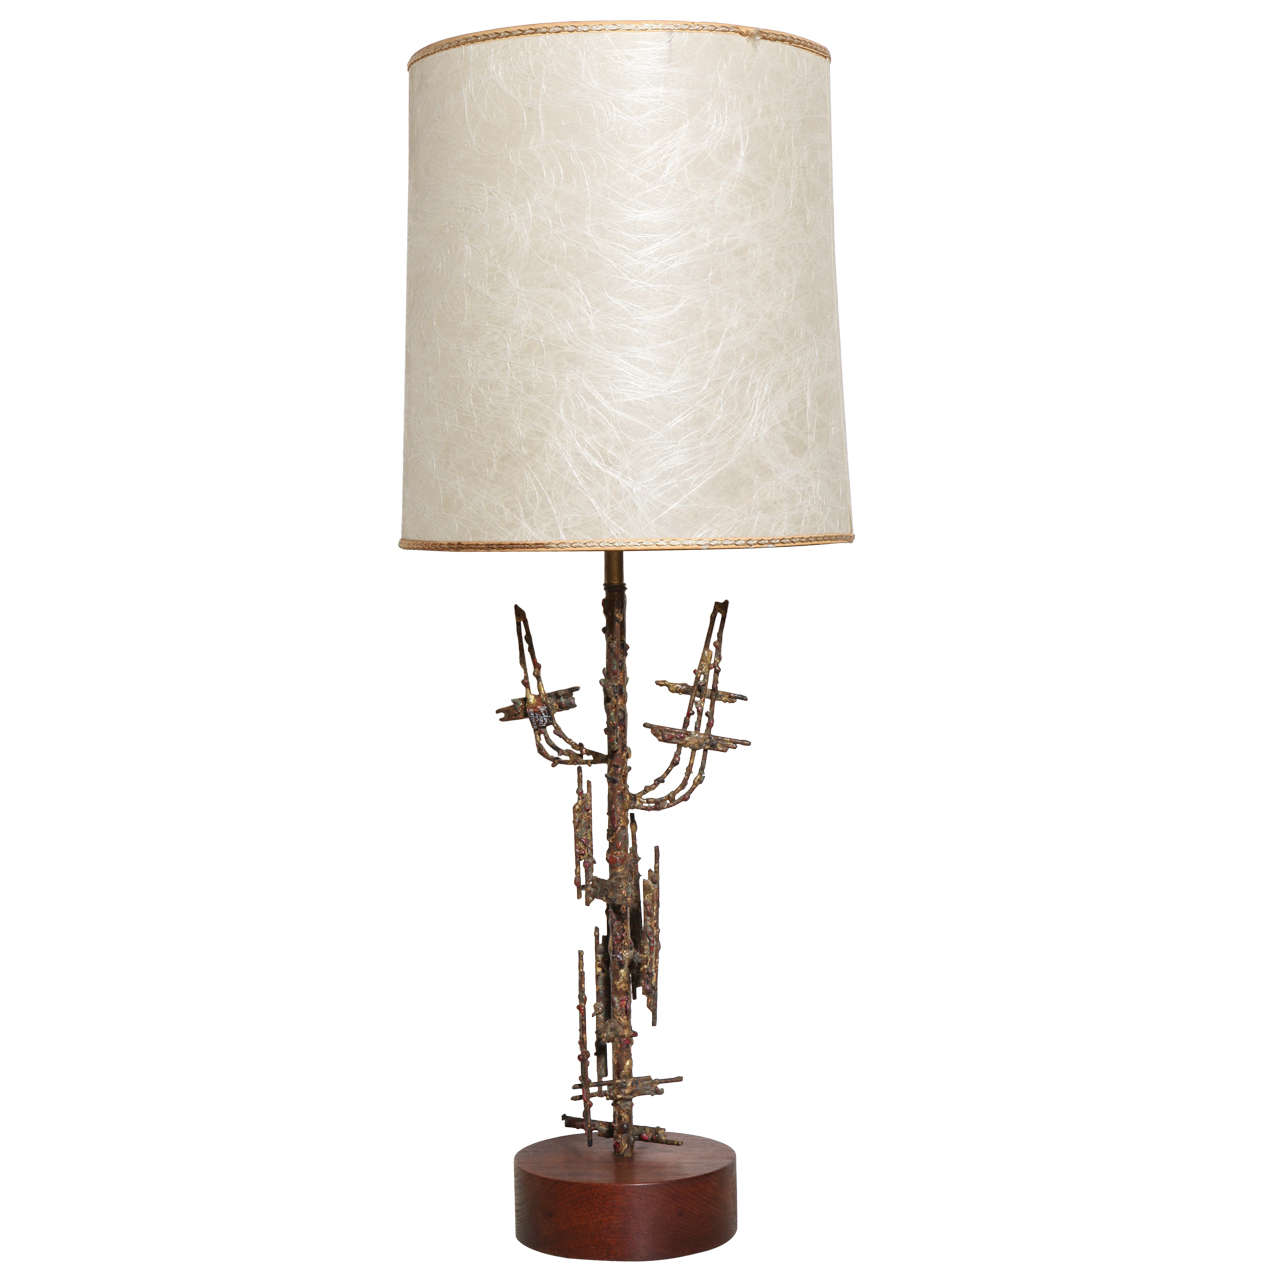 Marcello Fantoni for Raymor Abstract Bronzed Brutalist Table Lamp, circa 1960